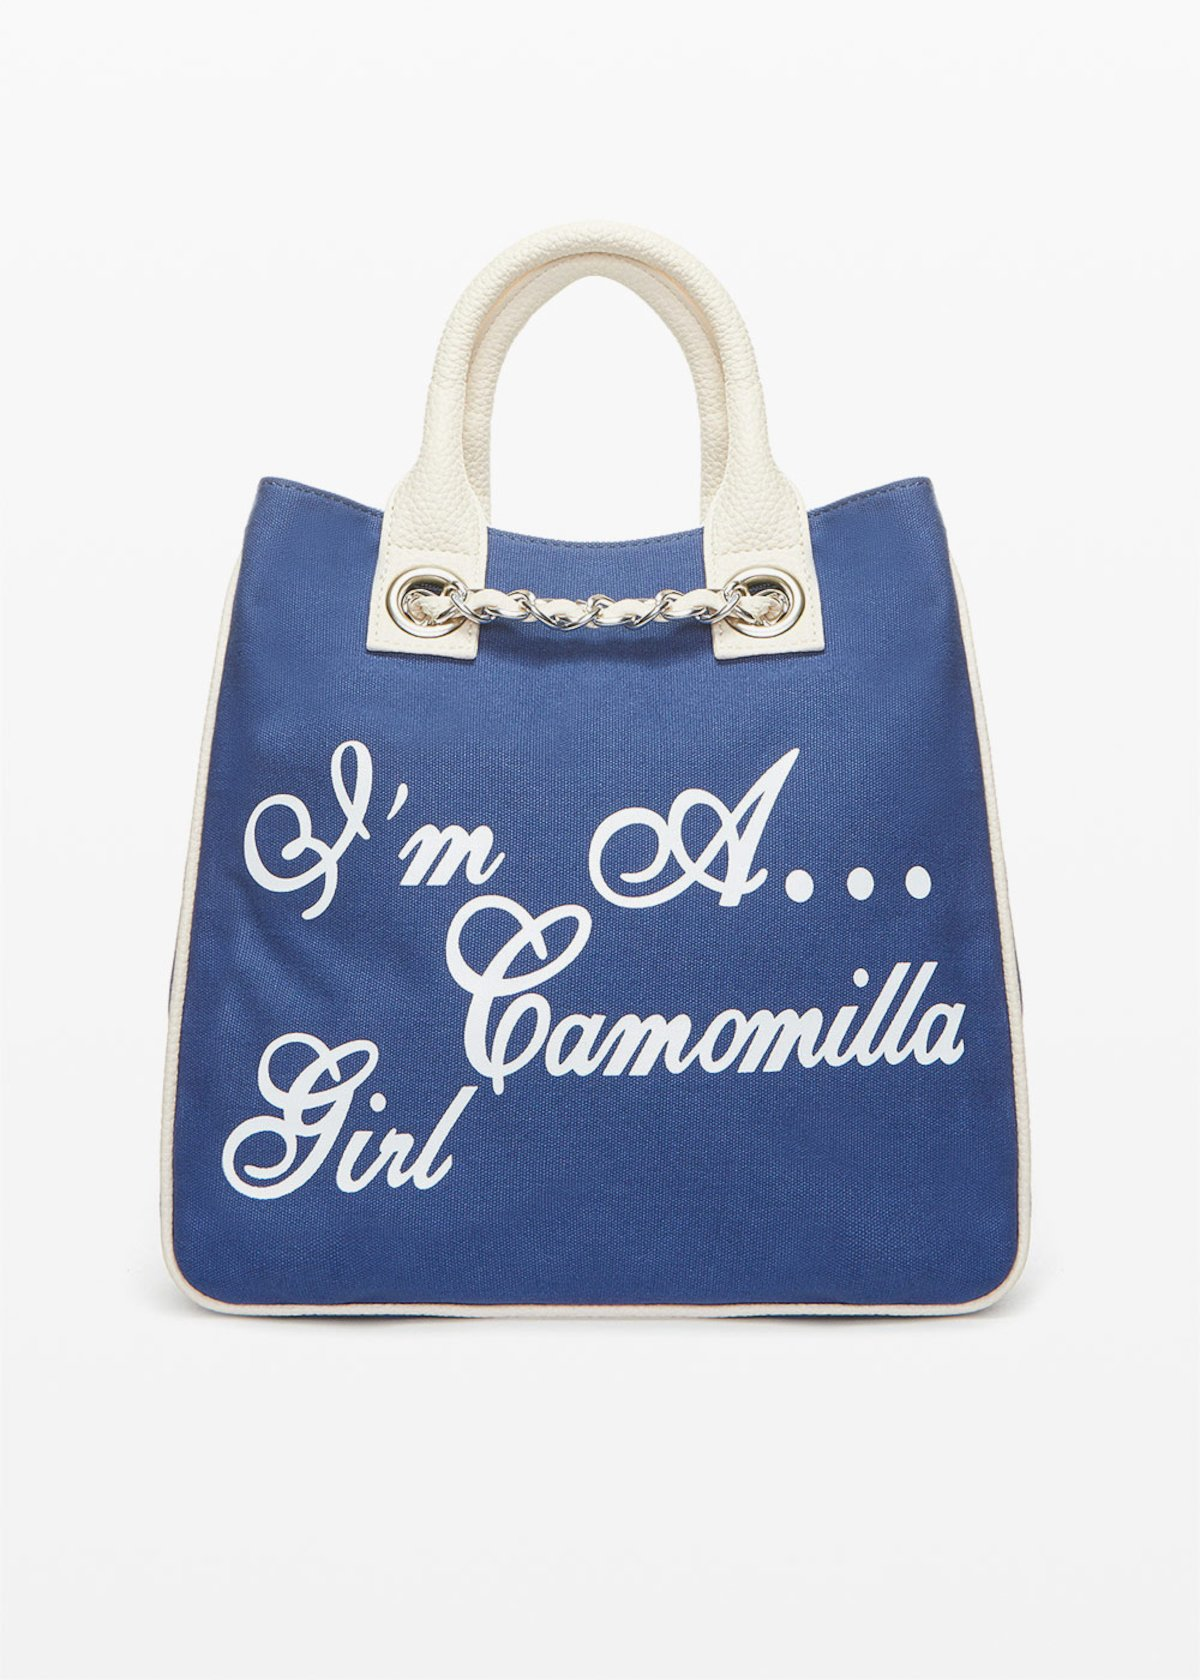 Shopping bag Mcamocanv in canvas - Avion / White - Donna - Immagine categoria